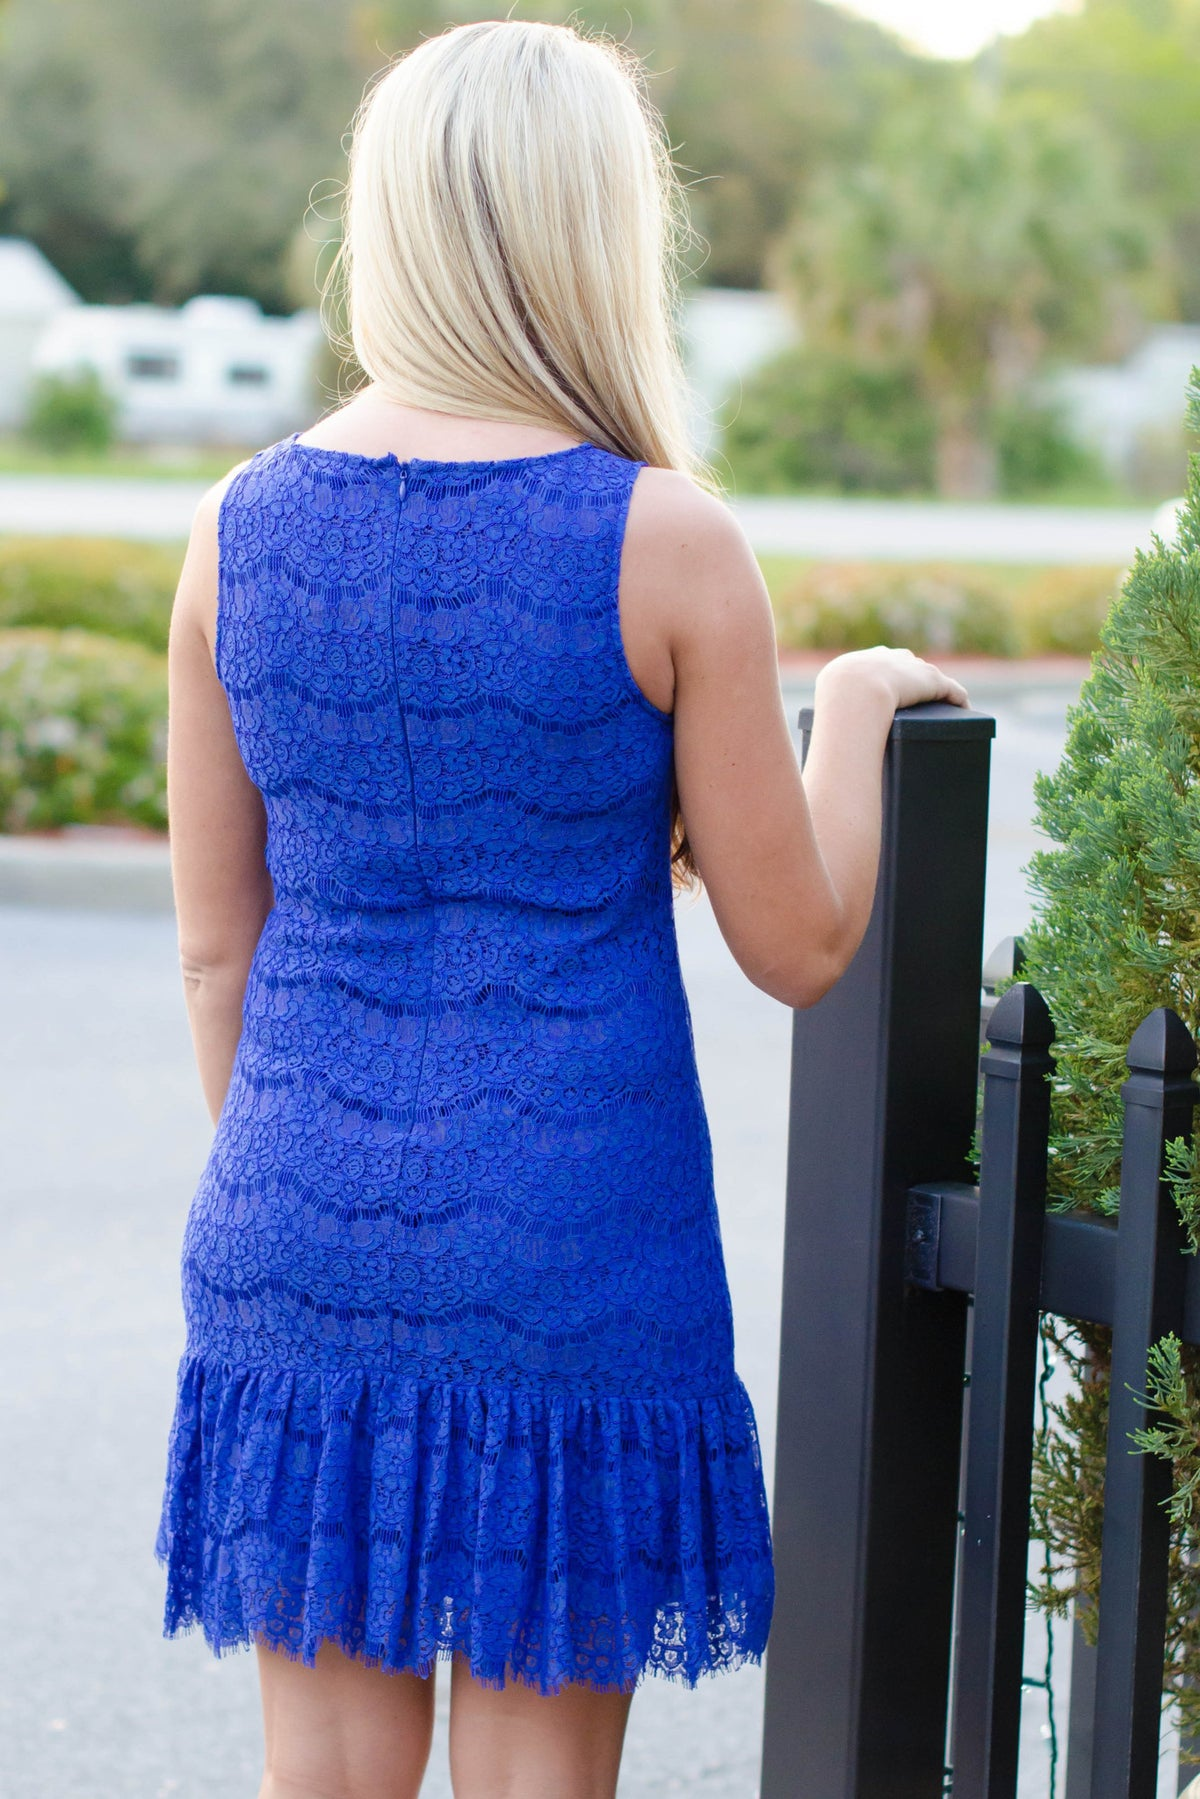 Darling: Isabel Dress, Blue